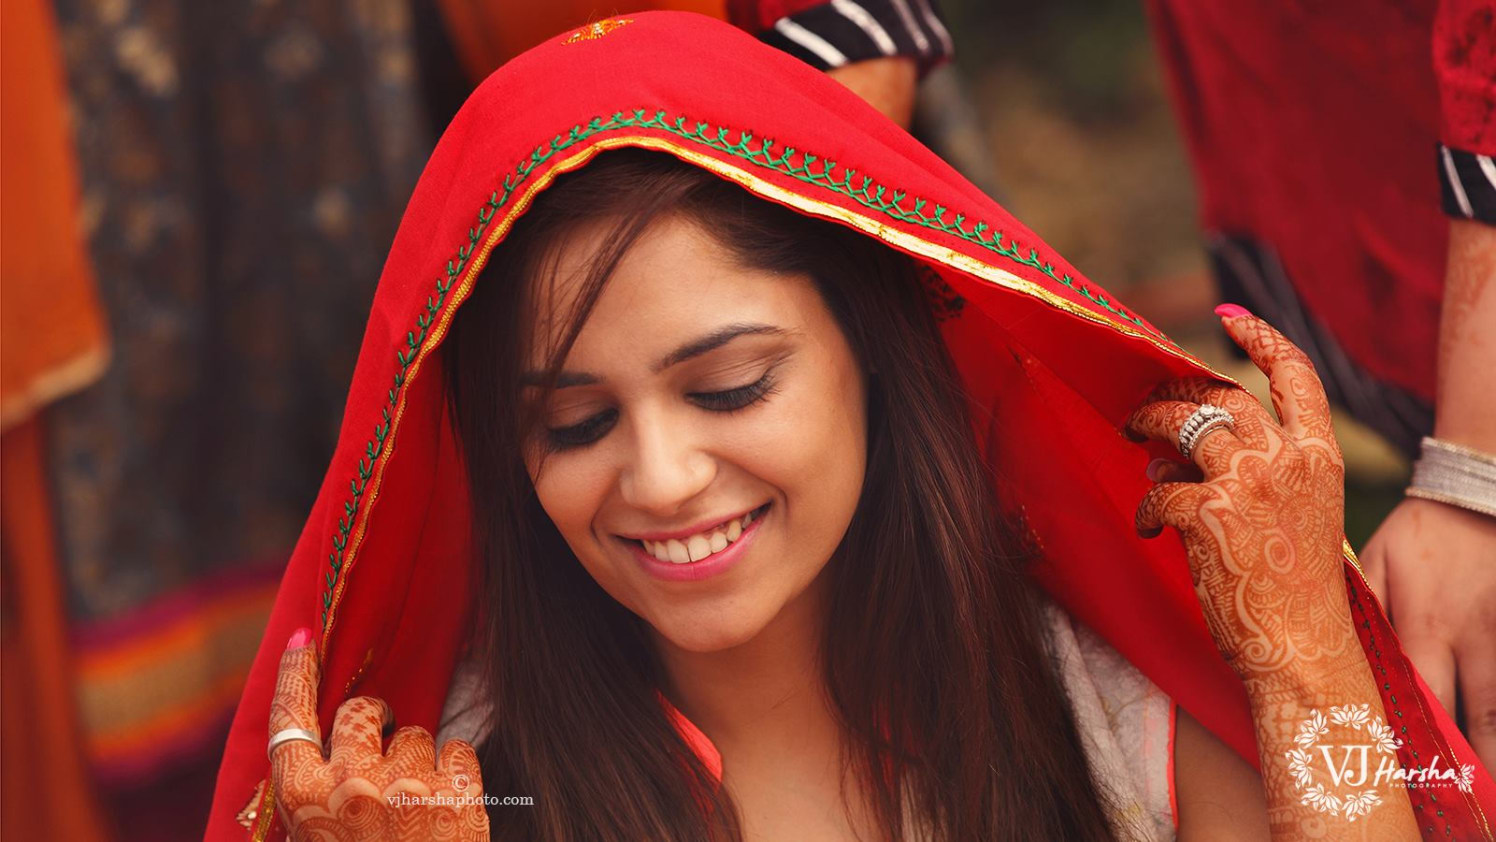 The Bride with a Beautiful Smile by Vjharsha Photography Wedding-photography | Weddings Photos & Ideas